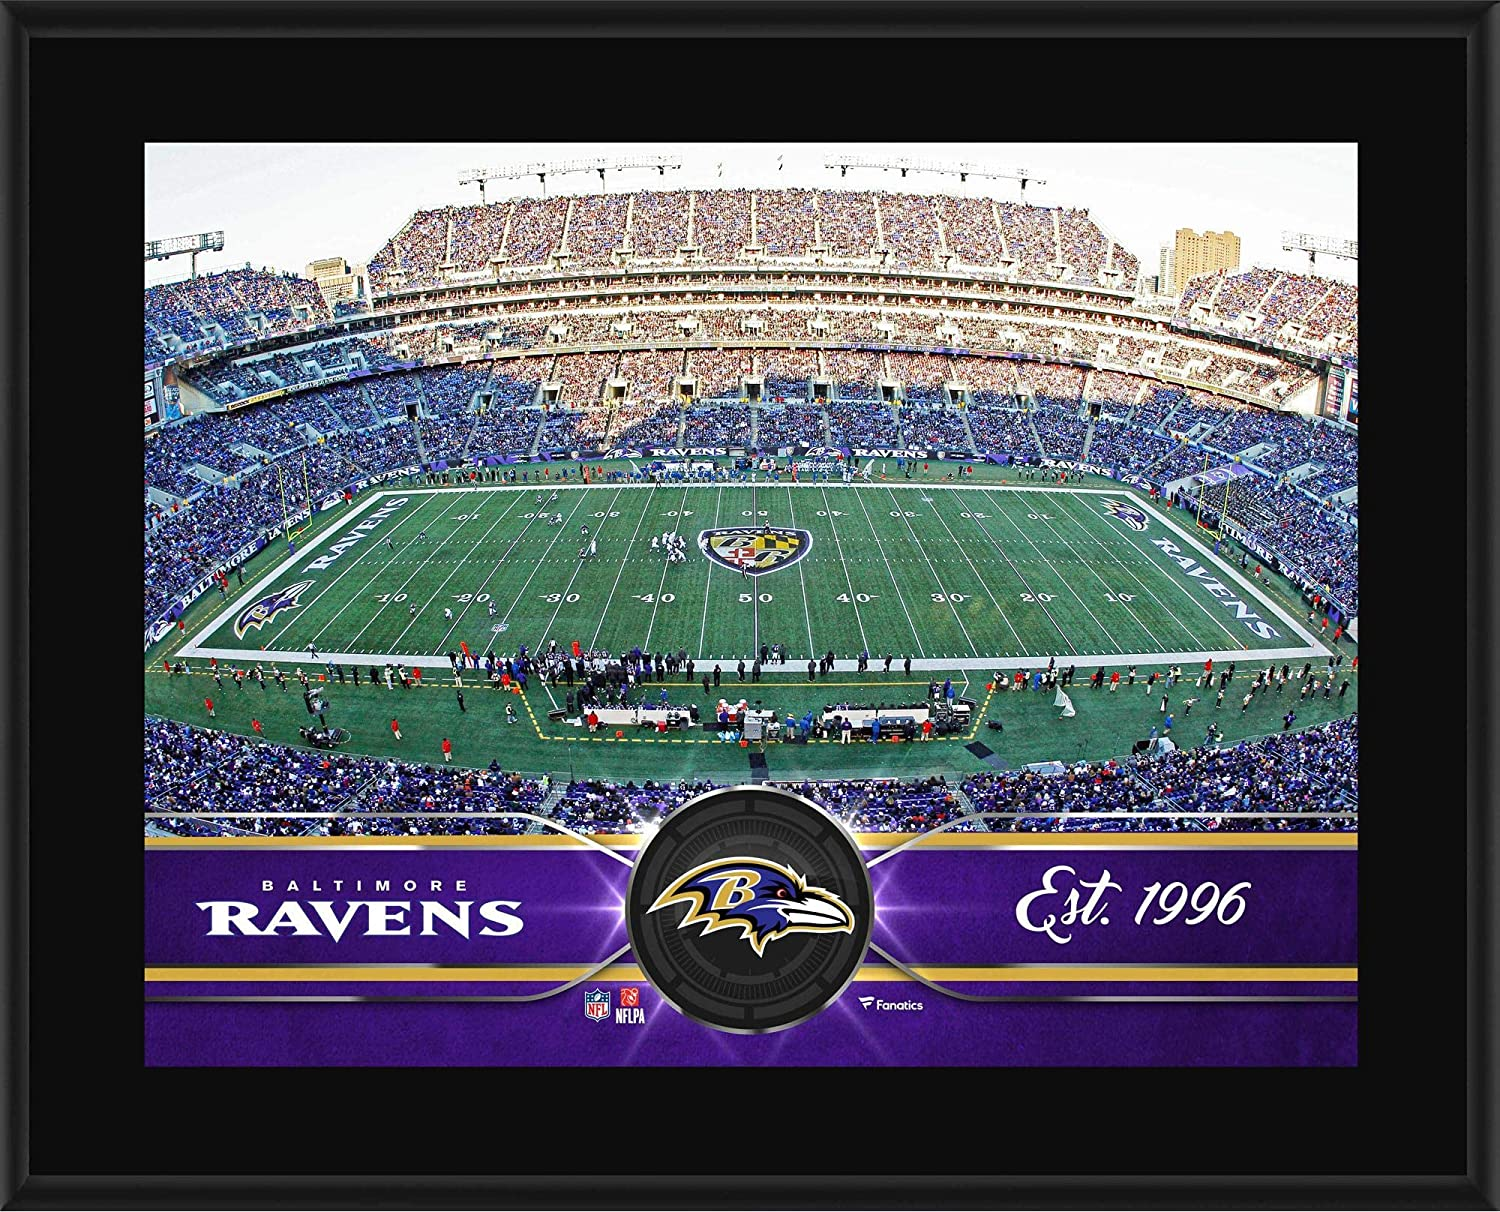 Baltimore Ravens 10.5 x 13 Sublimated Team Plaque - NFL Team Plaques and Collages